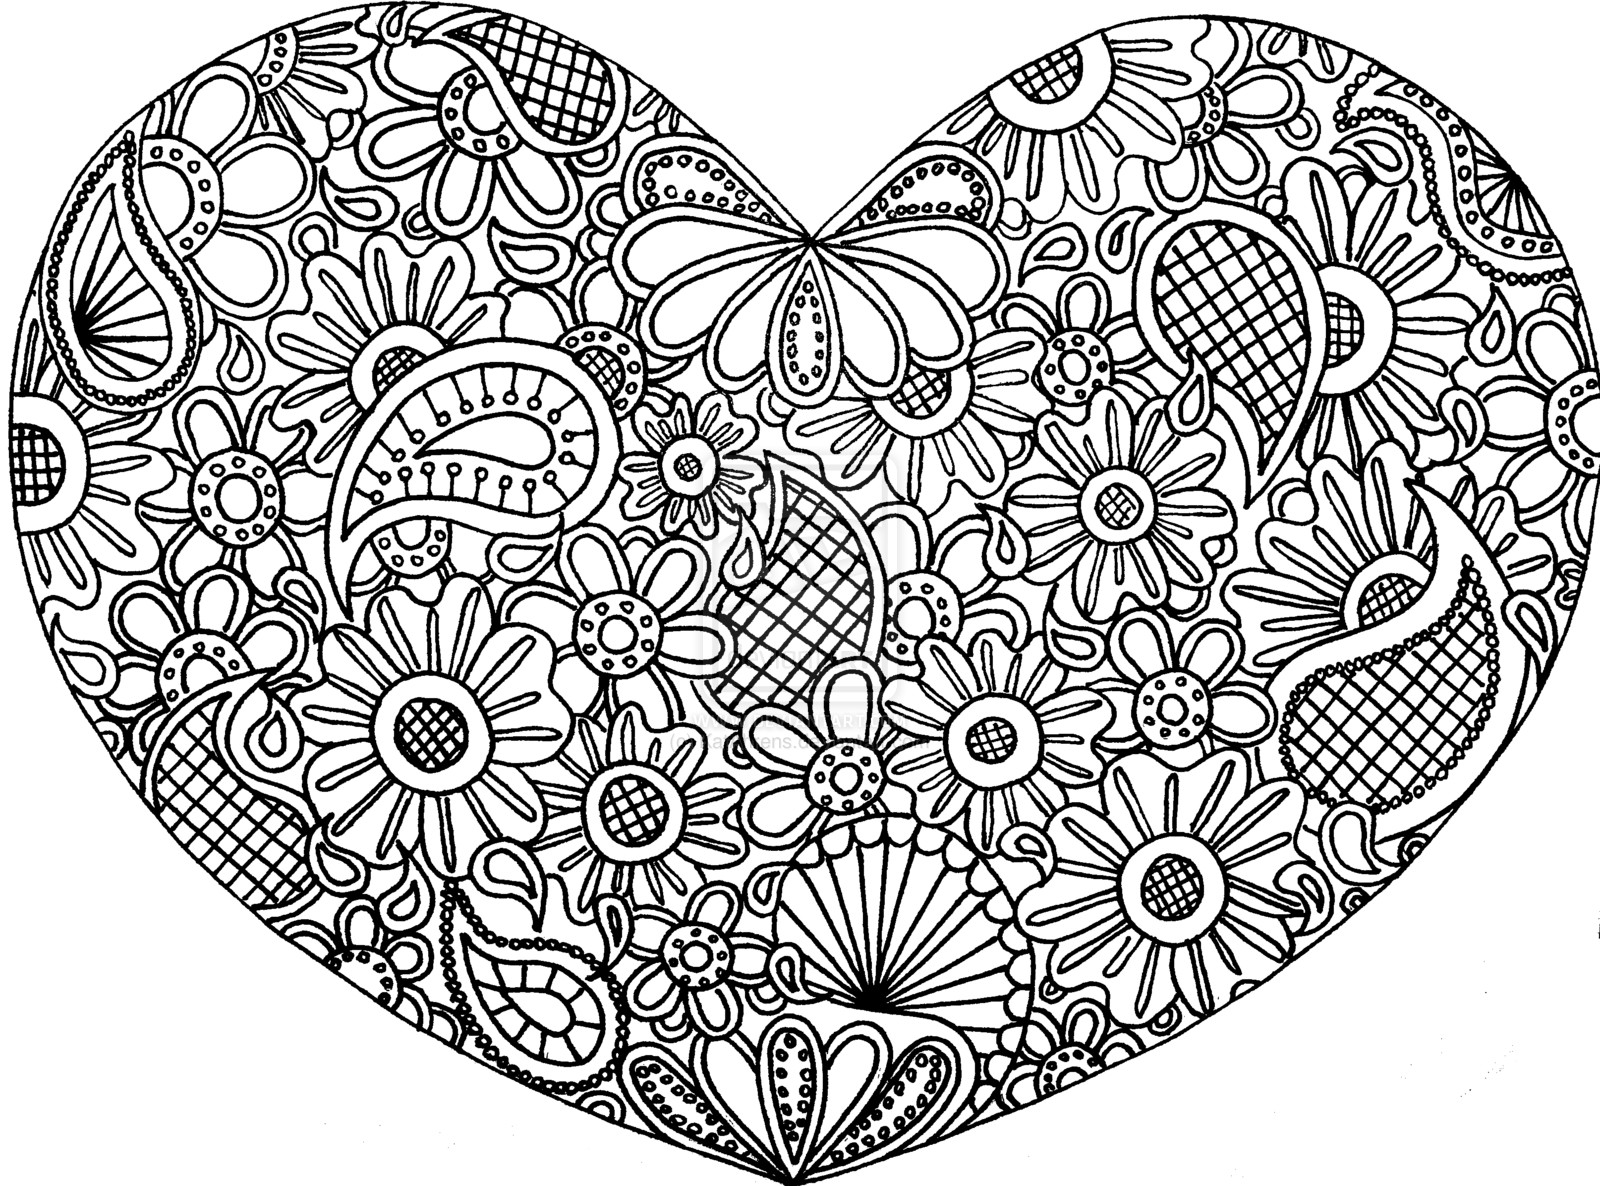 Coloring Pages Zentangle at GetDrawings.com | Free for ...